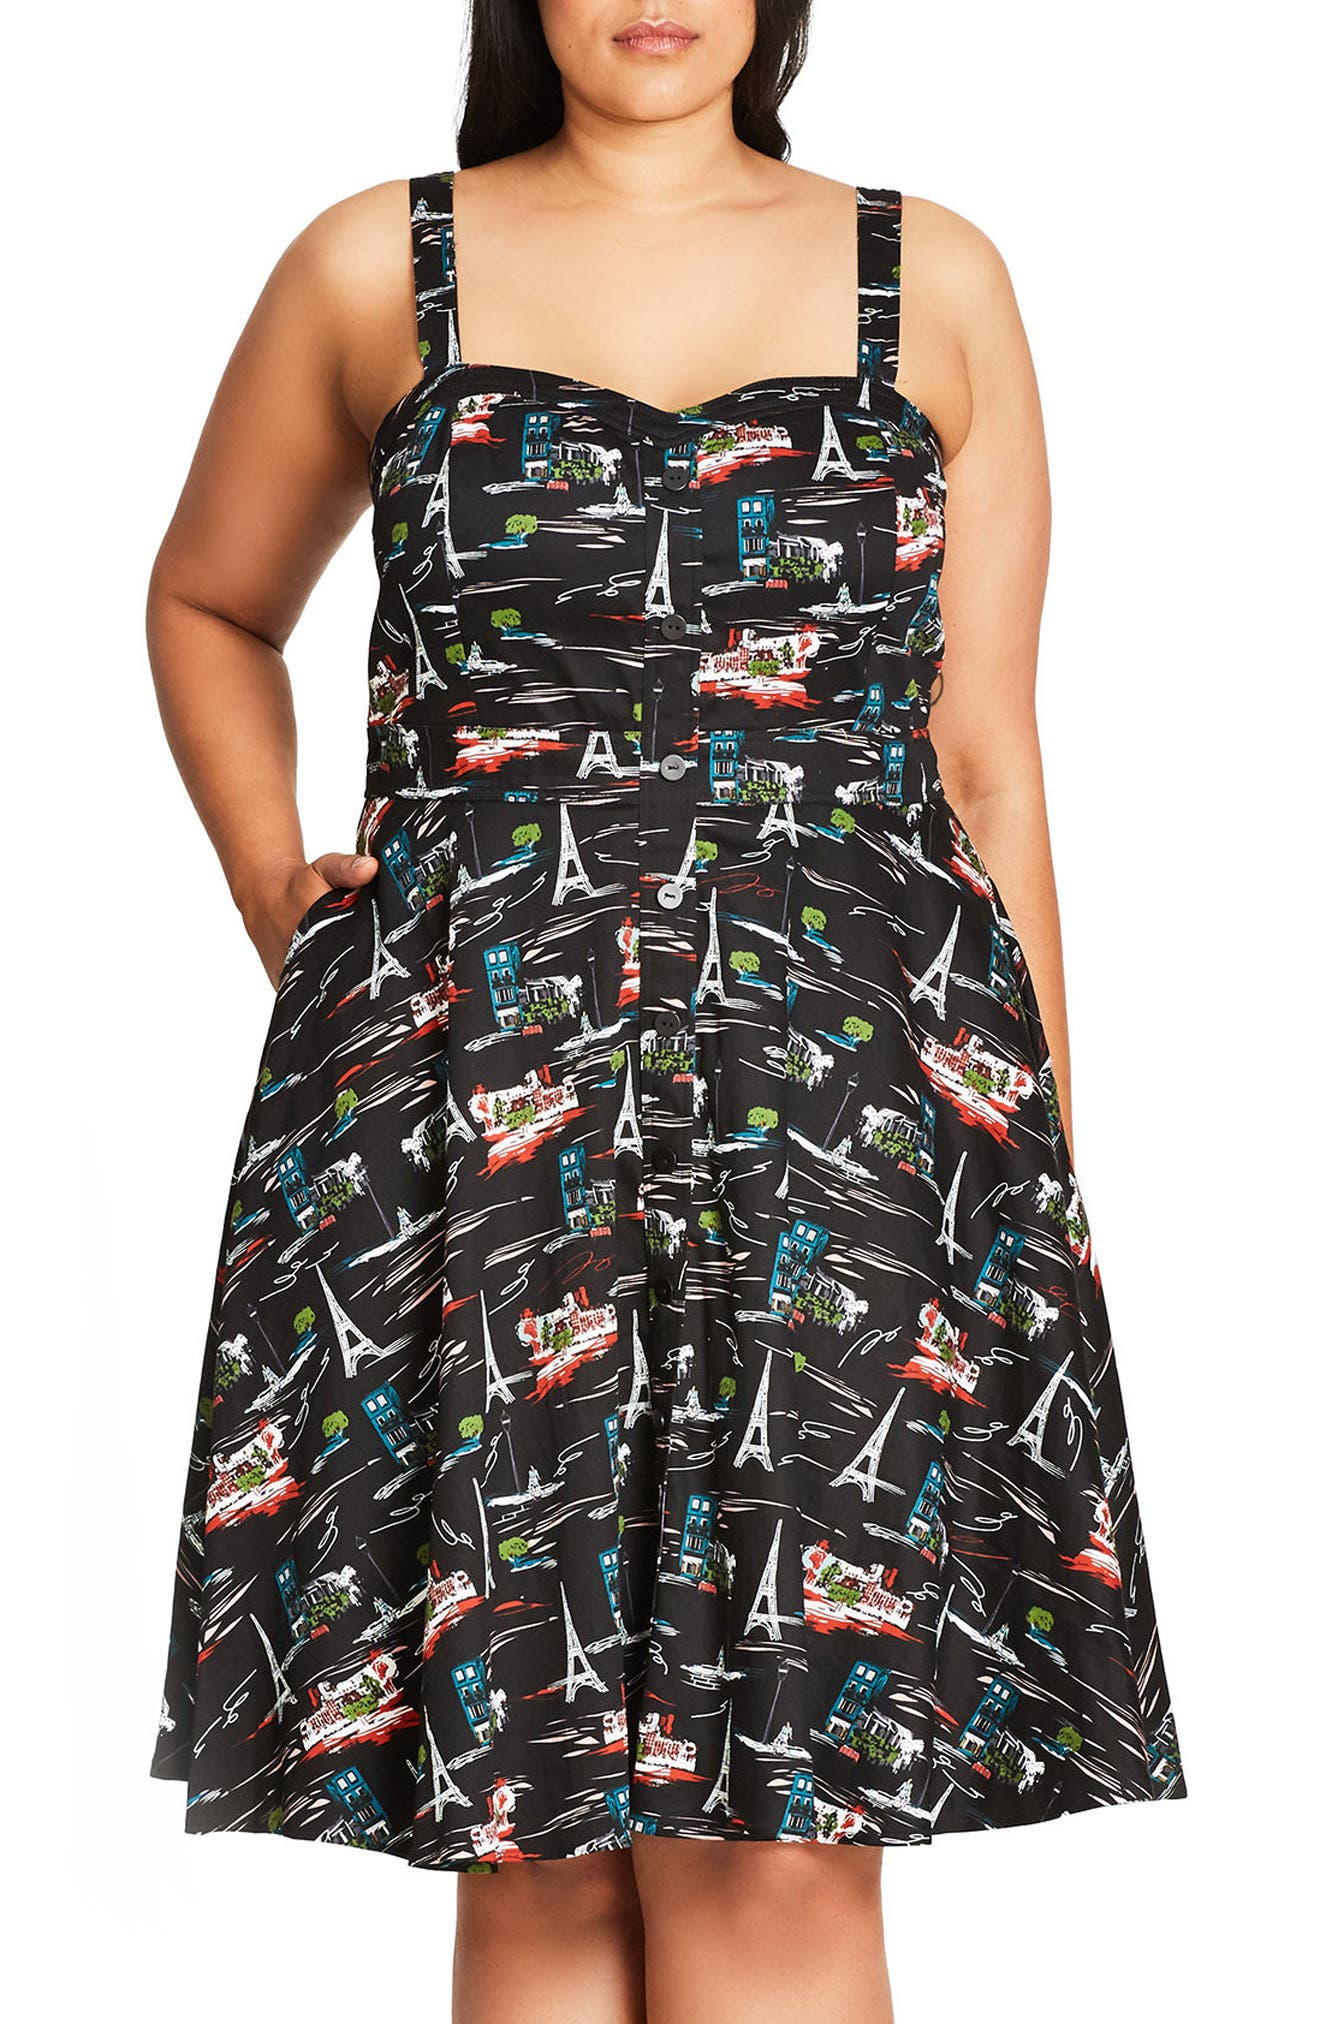 Alternate Image 1 Selected - City Chic Parisian Chic Print Fit & Flare Sundress